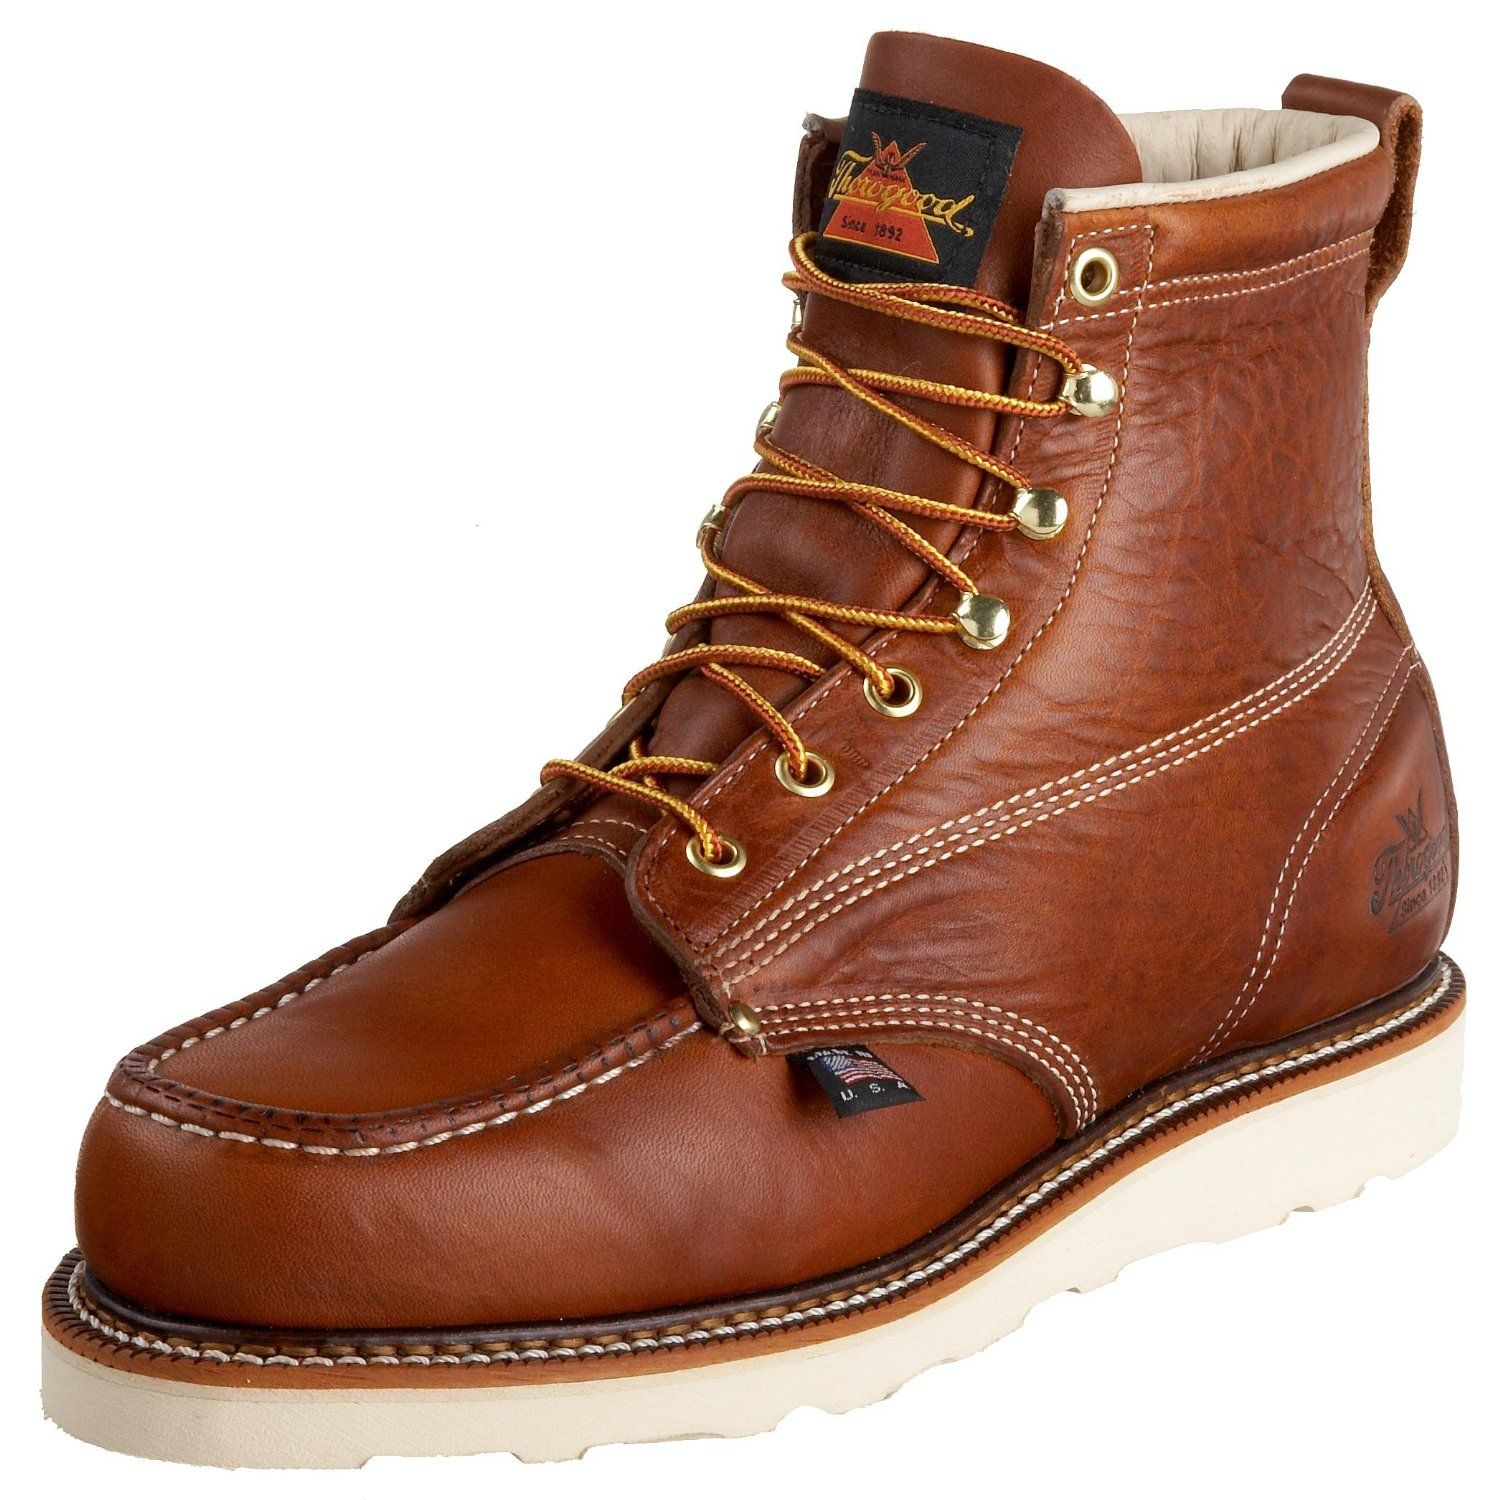 Are Red Wing Boots Worth It - Boot Hto